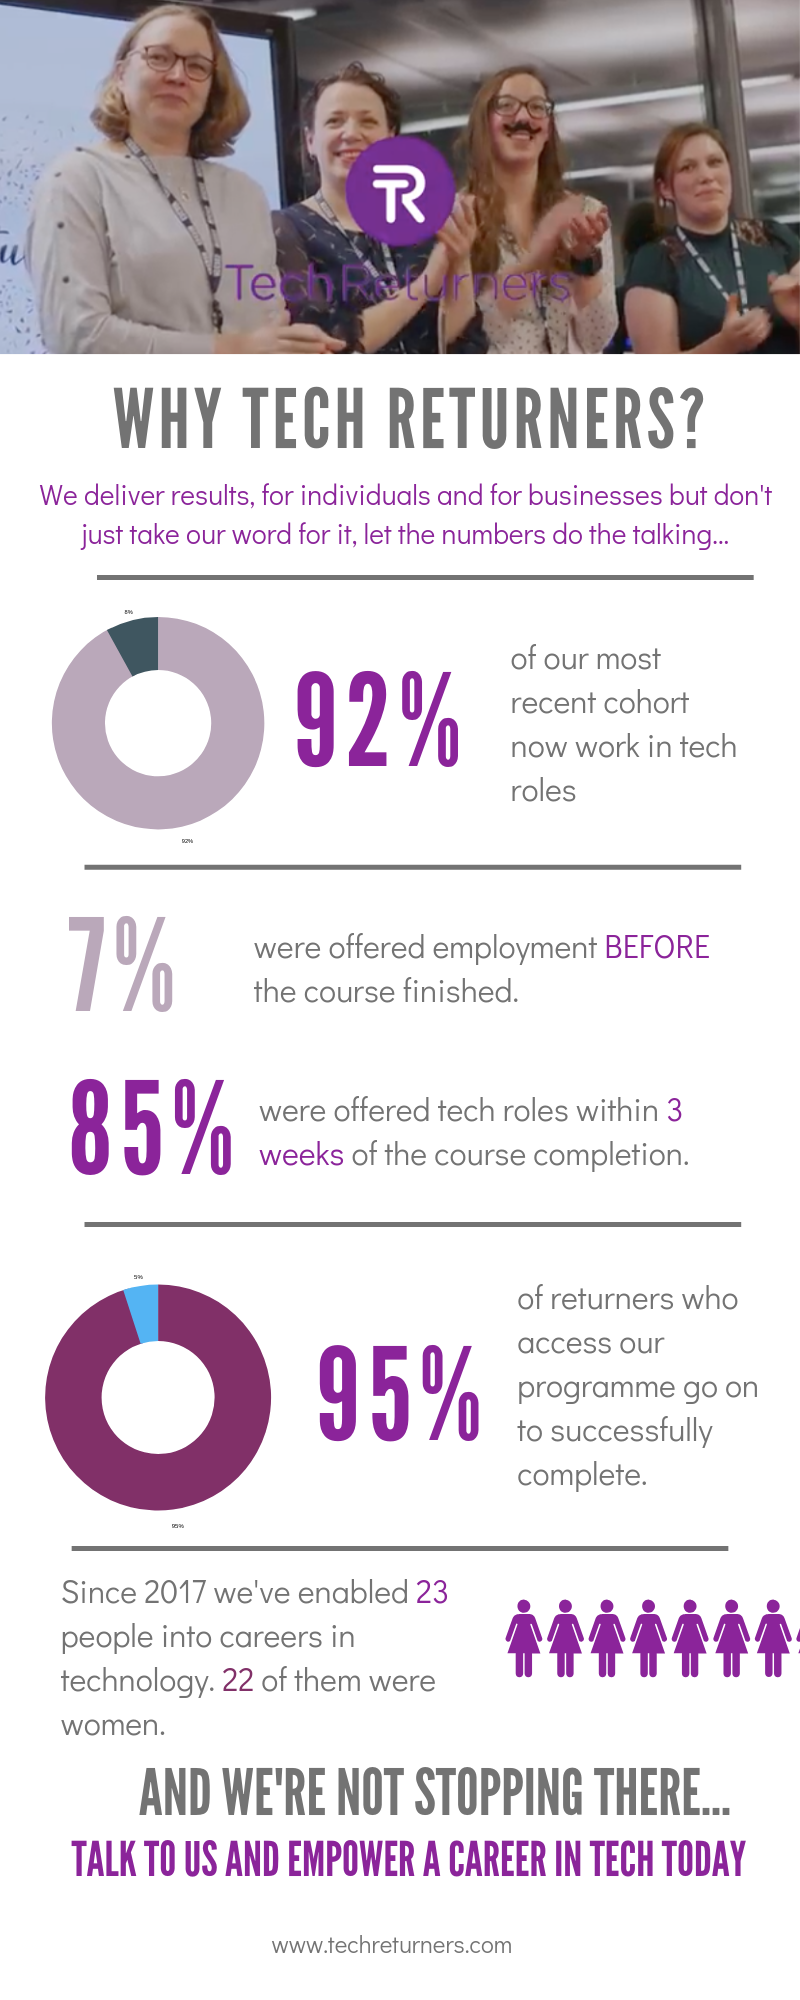 Why Tech Returners Infographic